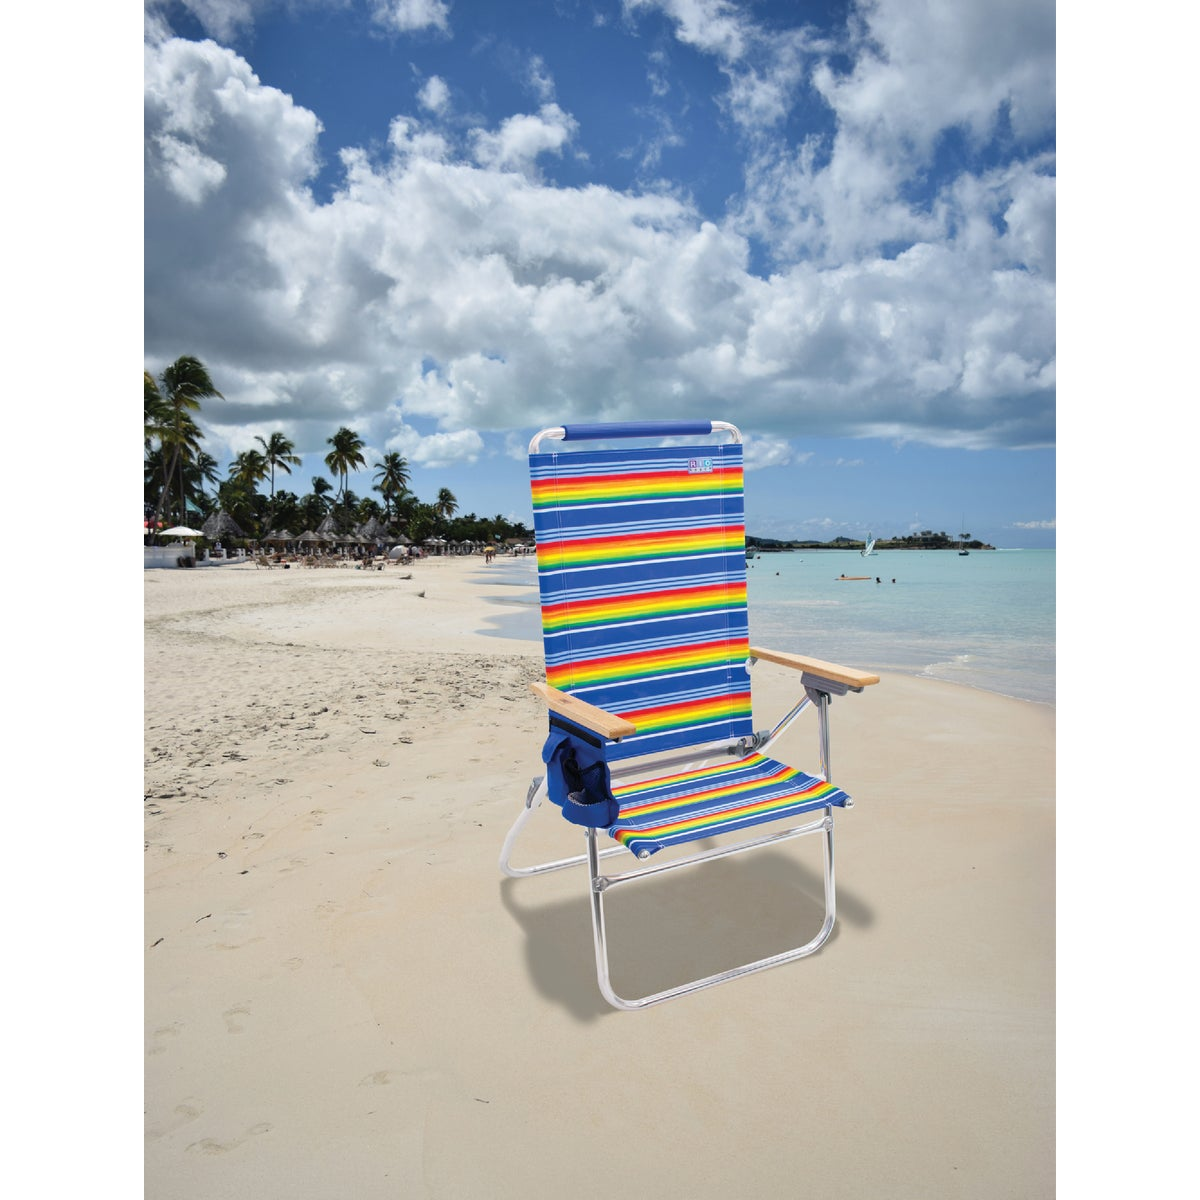 HI-BOY BEACH CHAIR - SC642-1450 by Rio Brands  Ningbo1